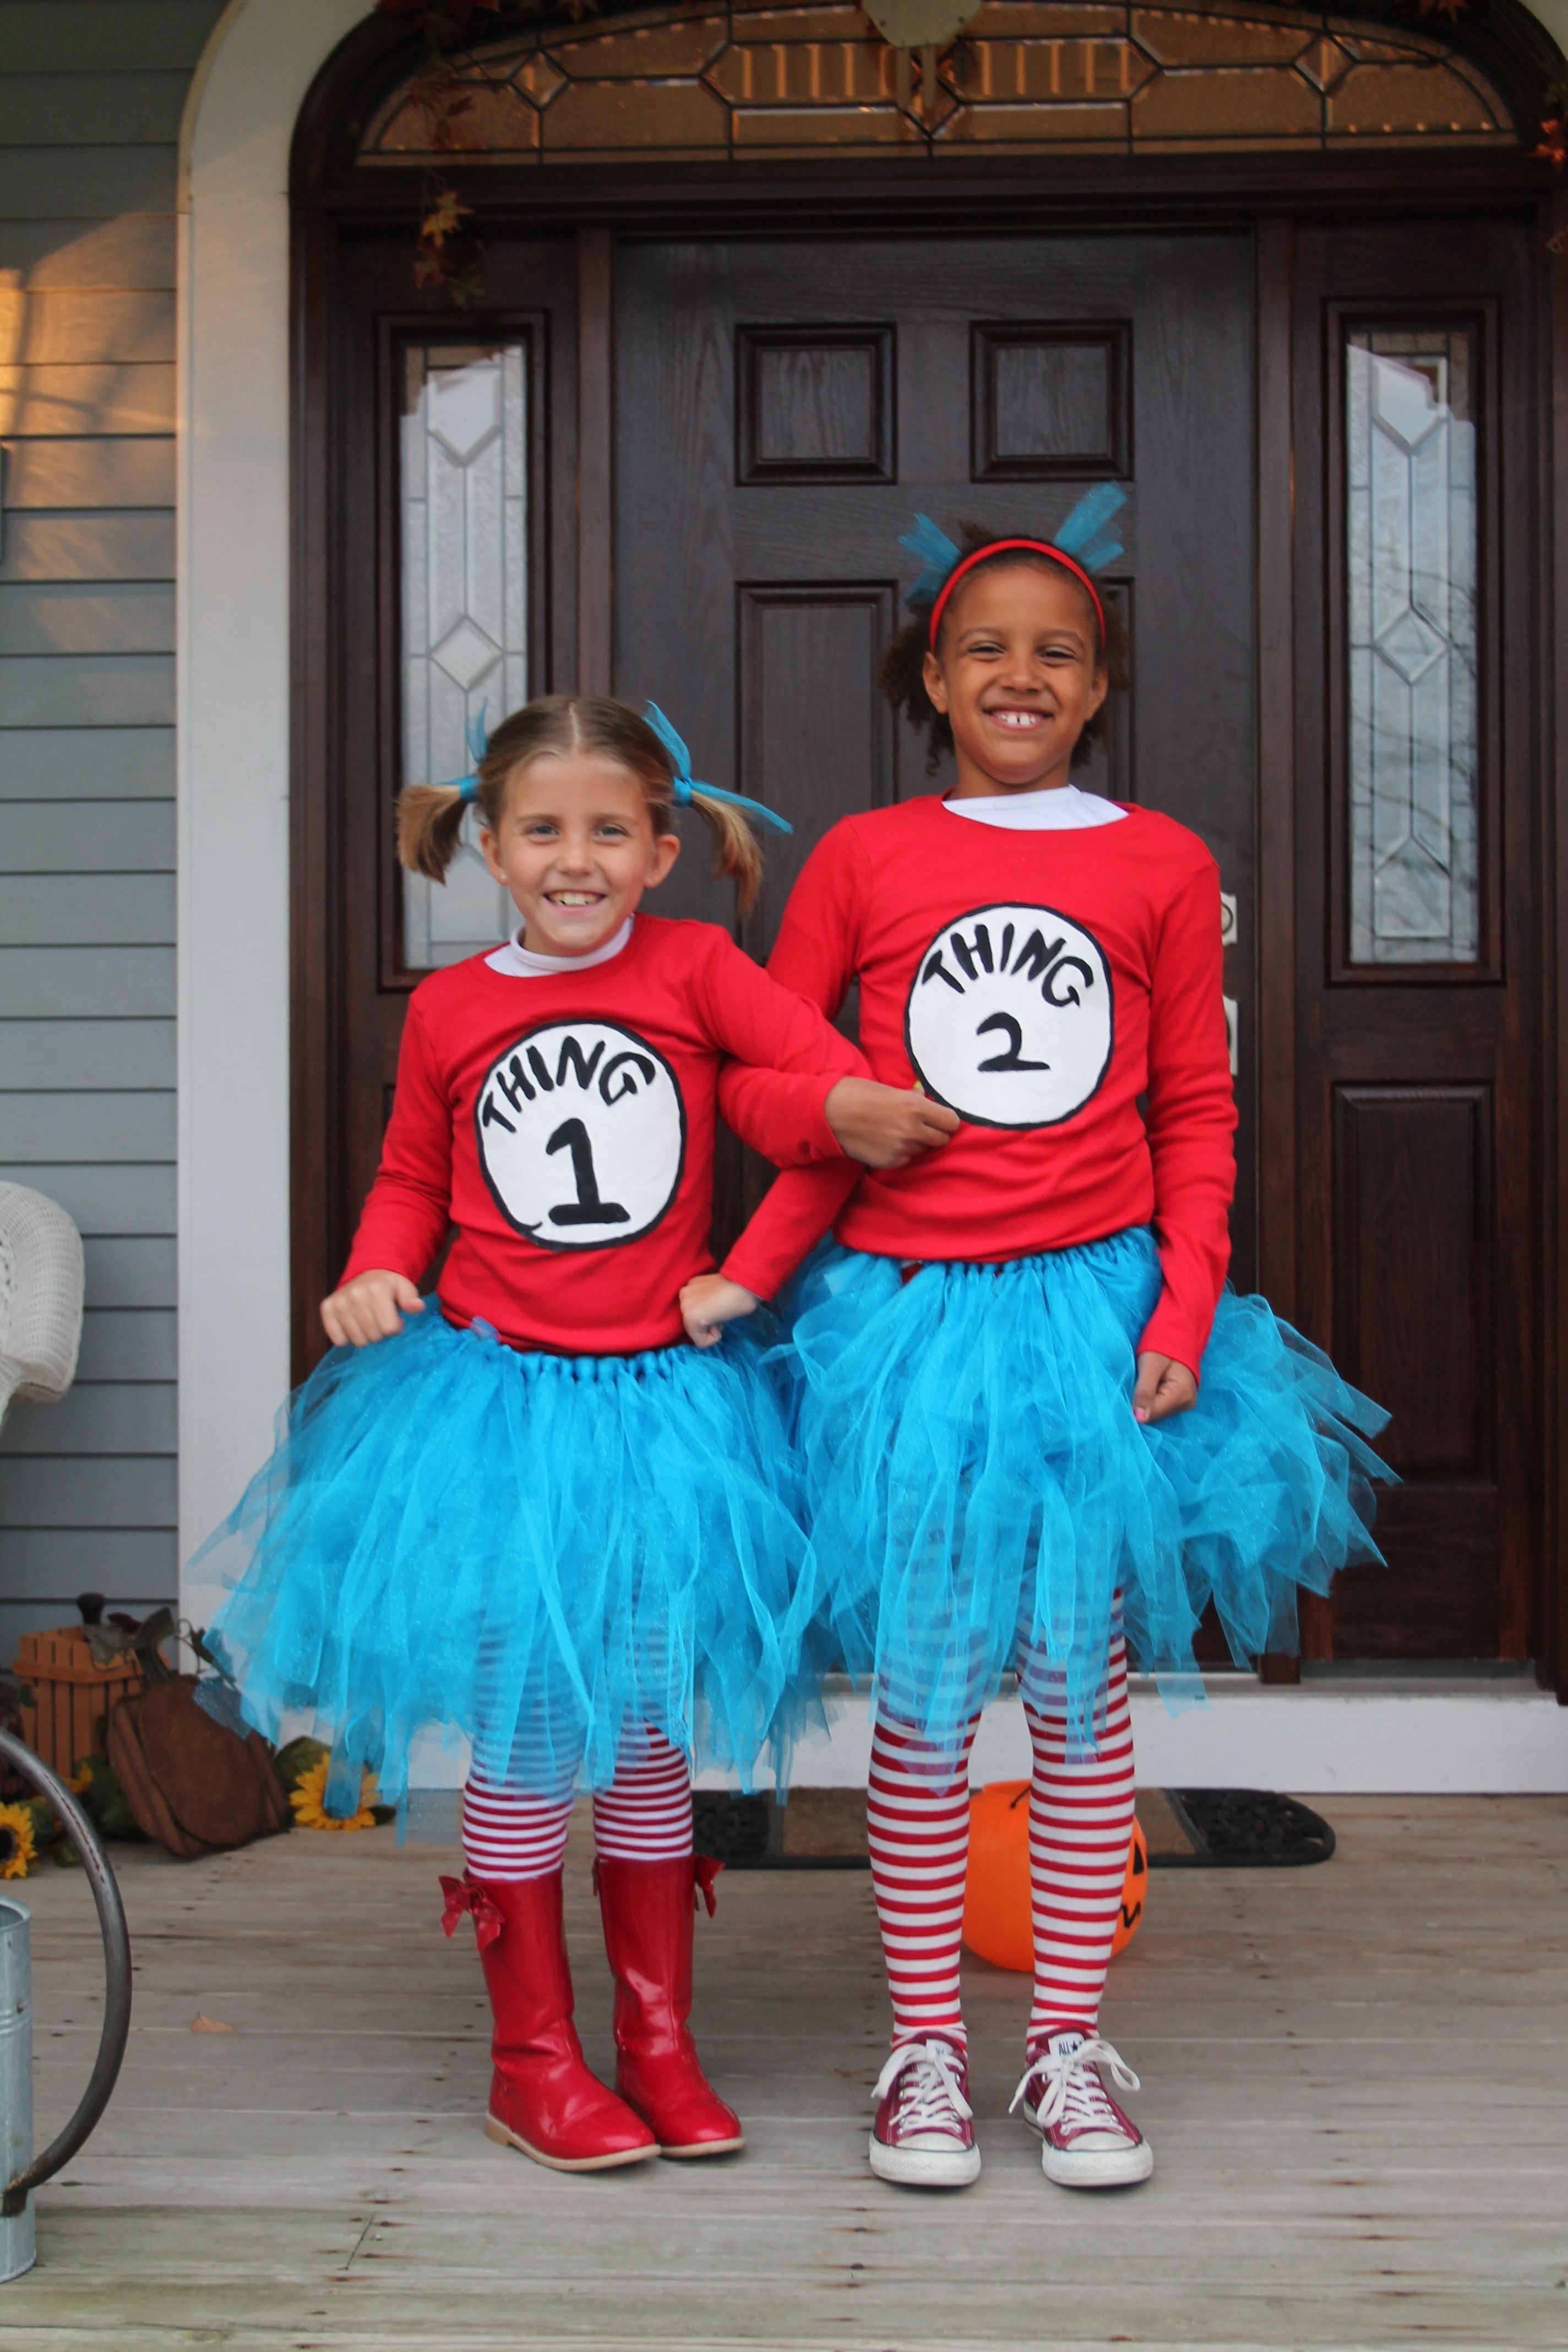 10 Unique Thing 1 And Thing 2 Costume Ideas thing 1 thing 2 halloween costume costume ideas pinterest 2021